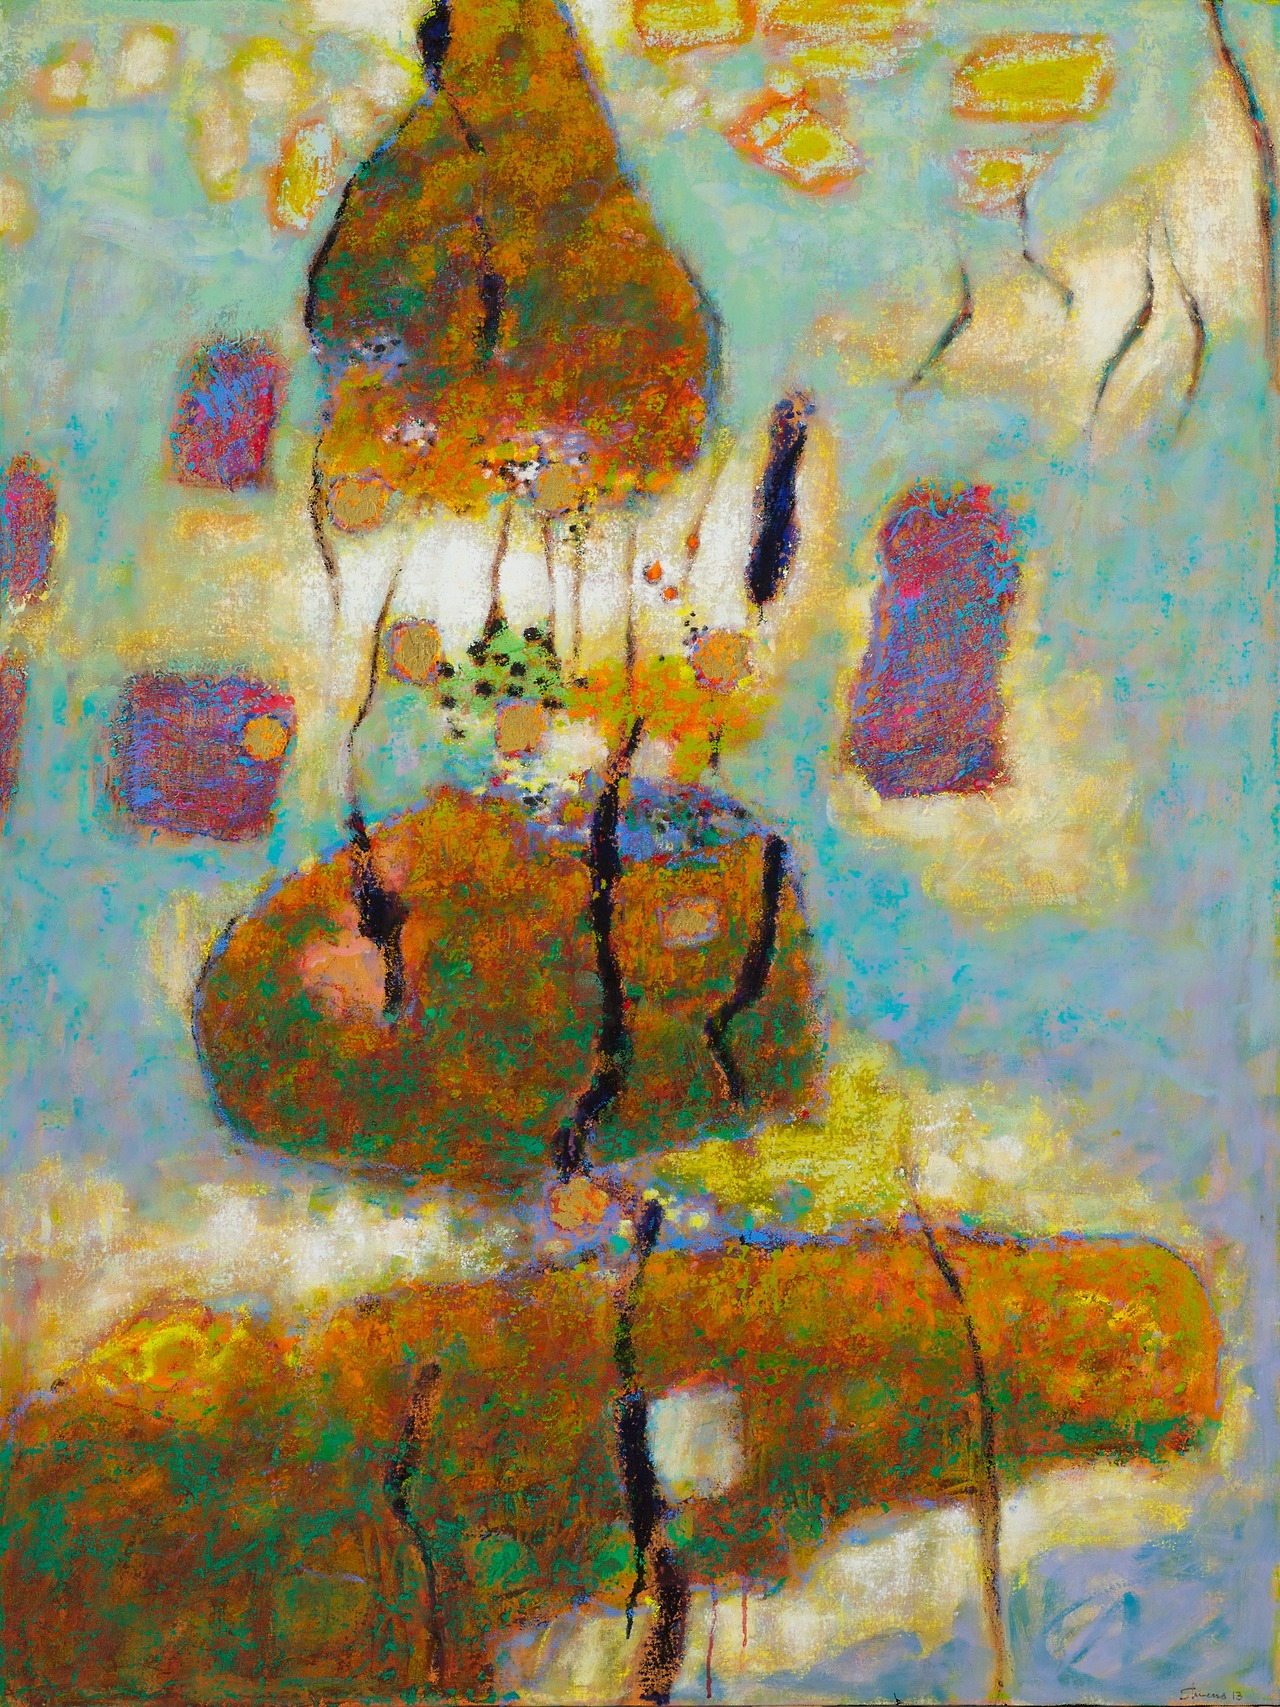 Psychic    Entity  | oil on canvas | 48 x 36"